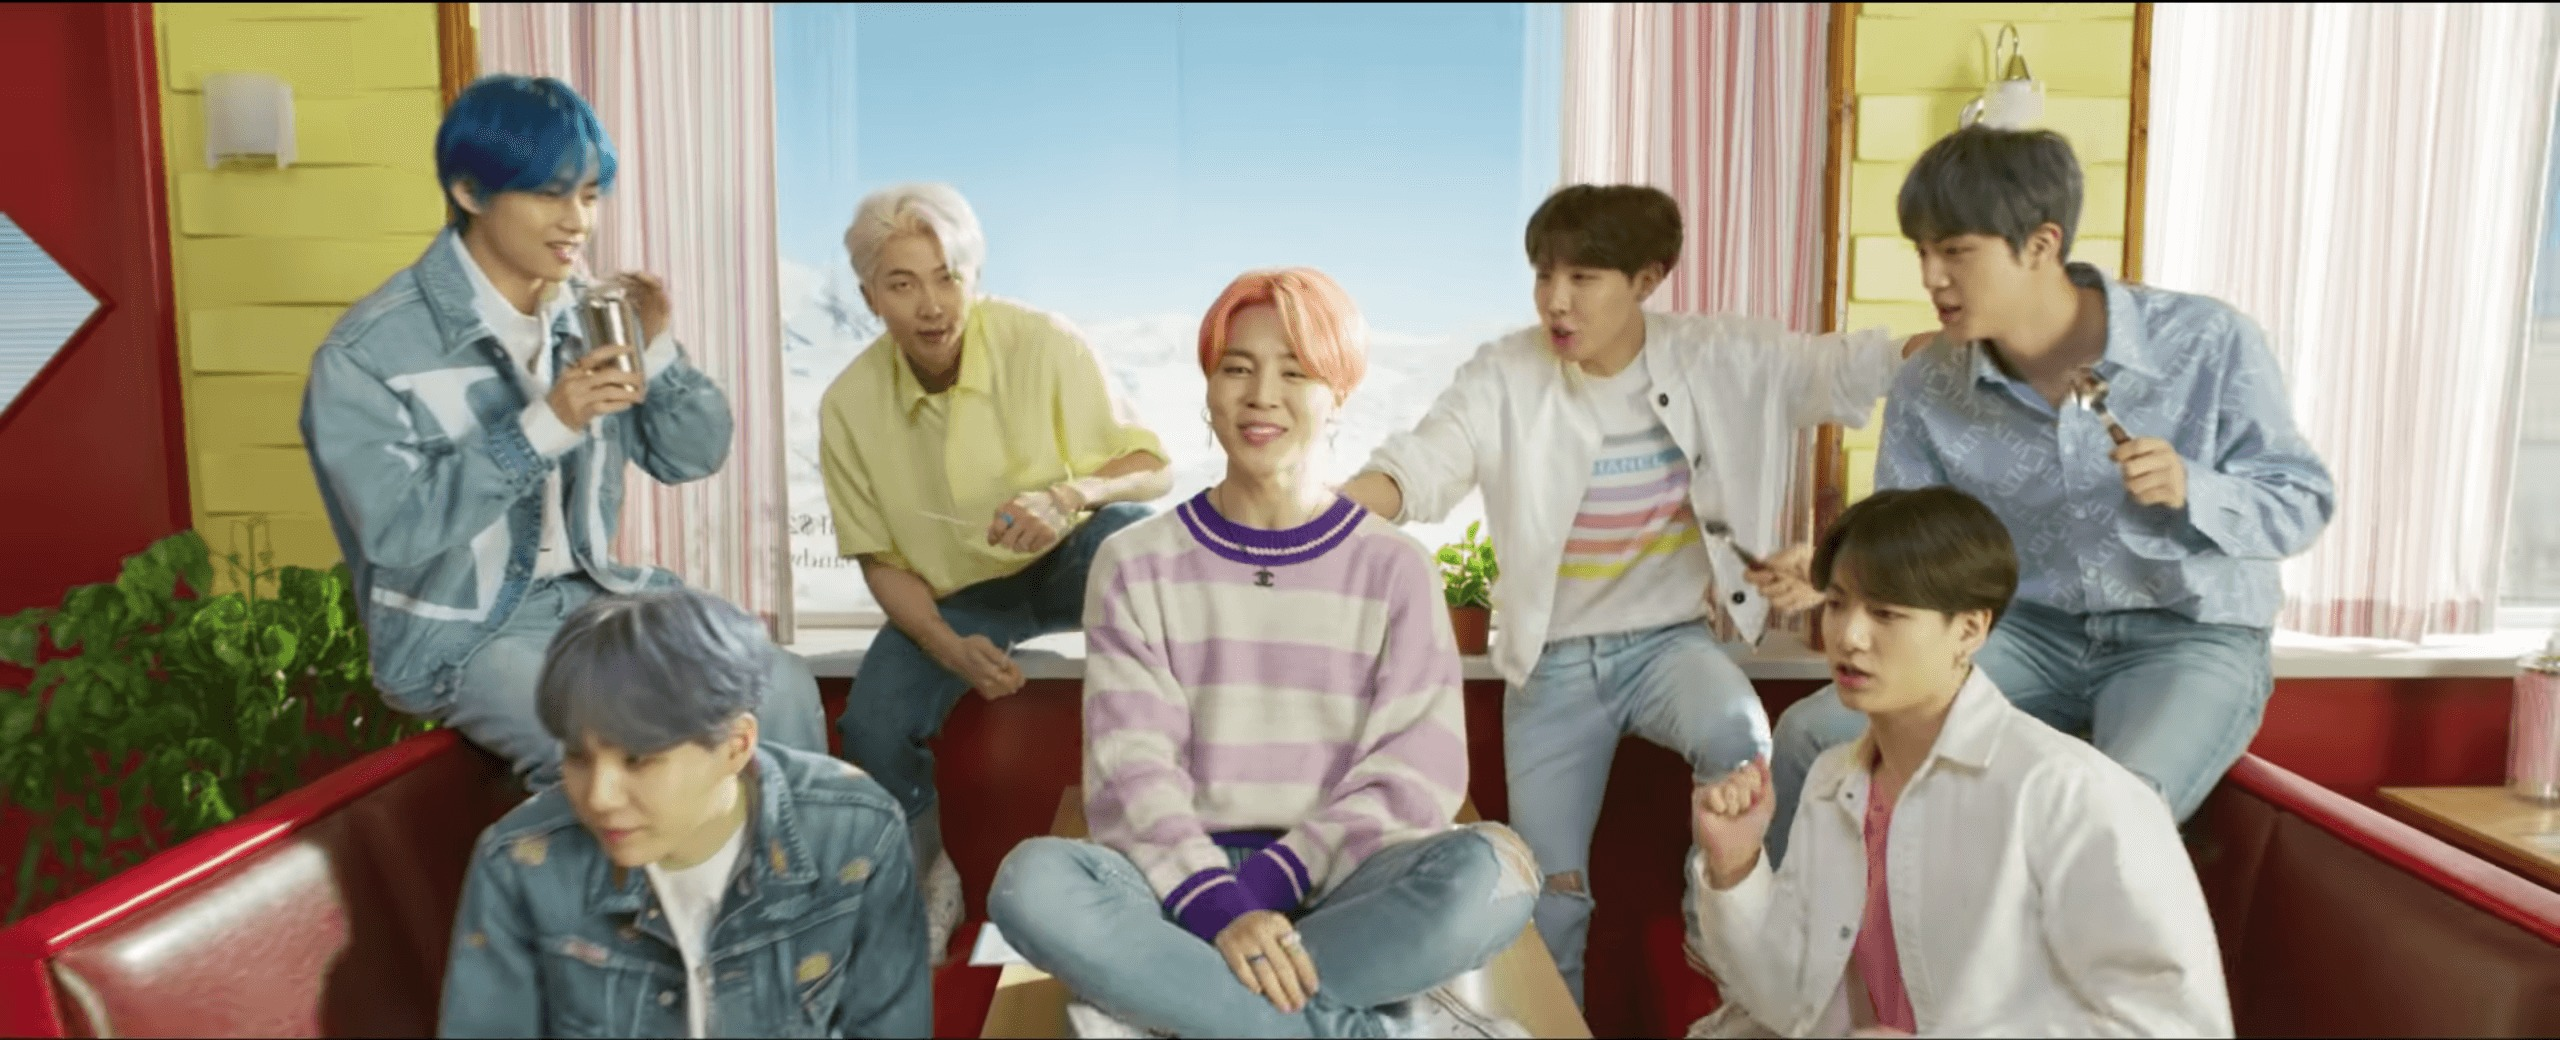 Seven member boy group BTS sitting around a Diner table while the boy with peach hair sits on the table in the center and smiles.